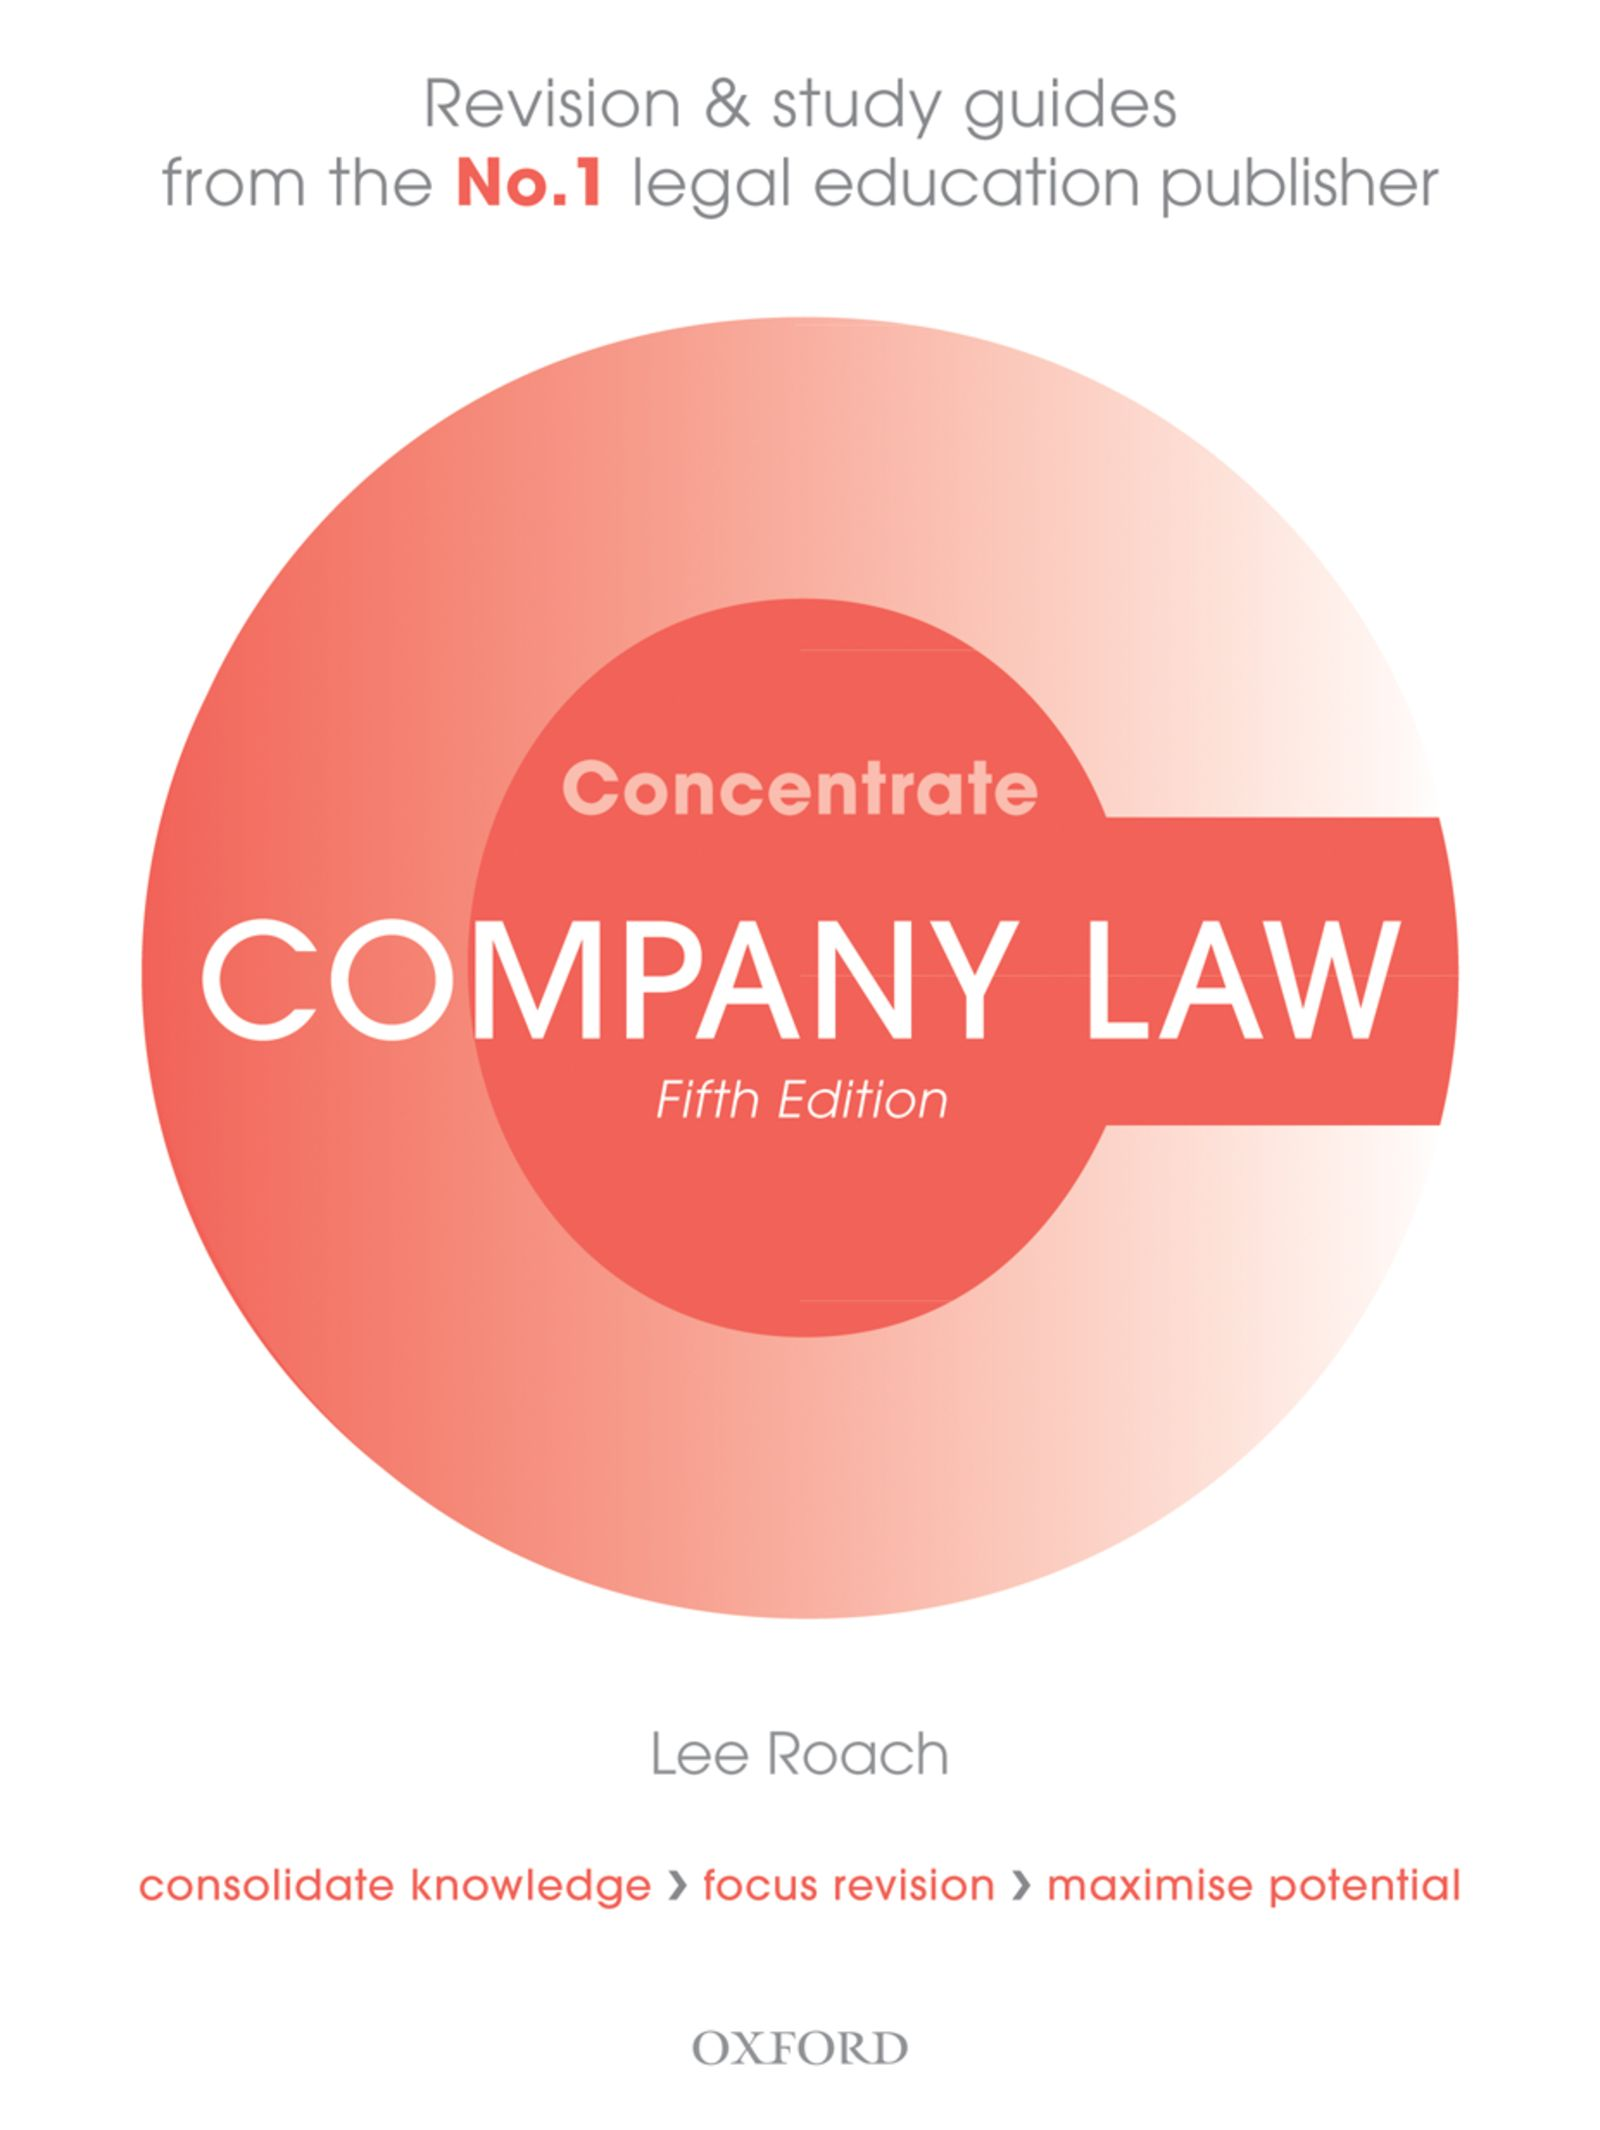 Company Law Concentrate 5e